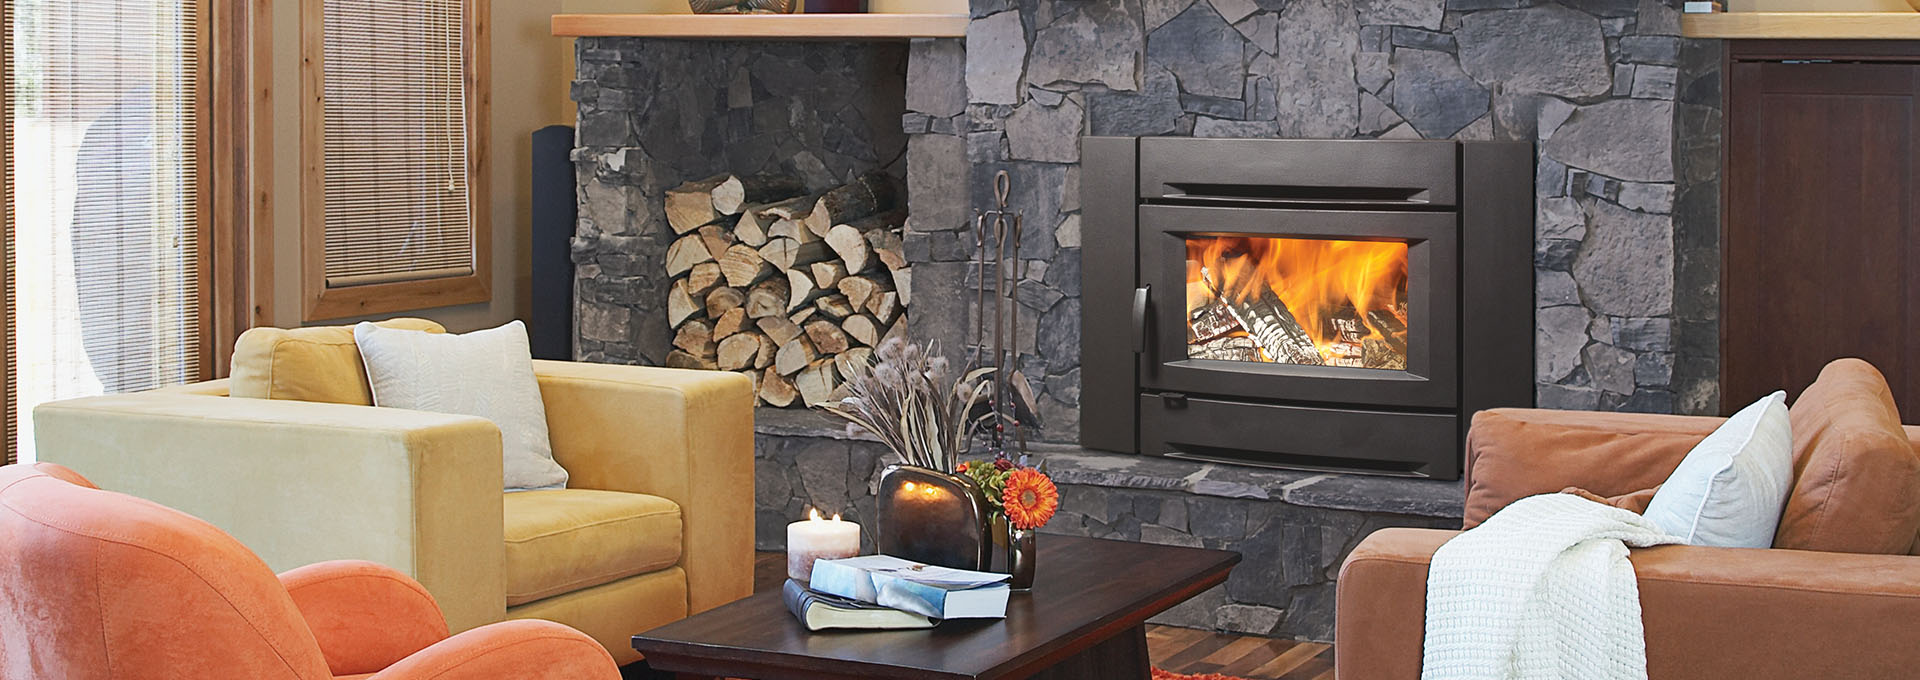 summit insert northwest energy wood d stoves inserts manufacturers pacific fireplace